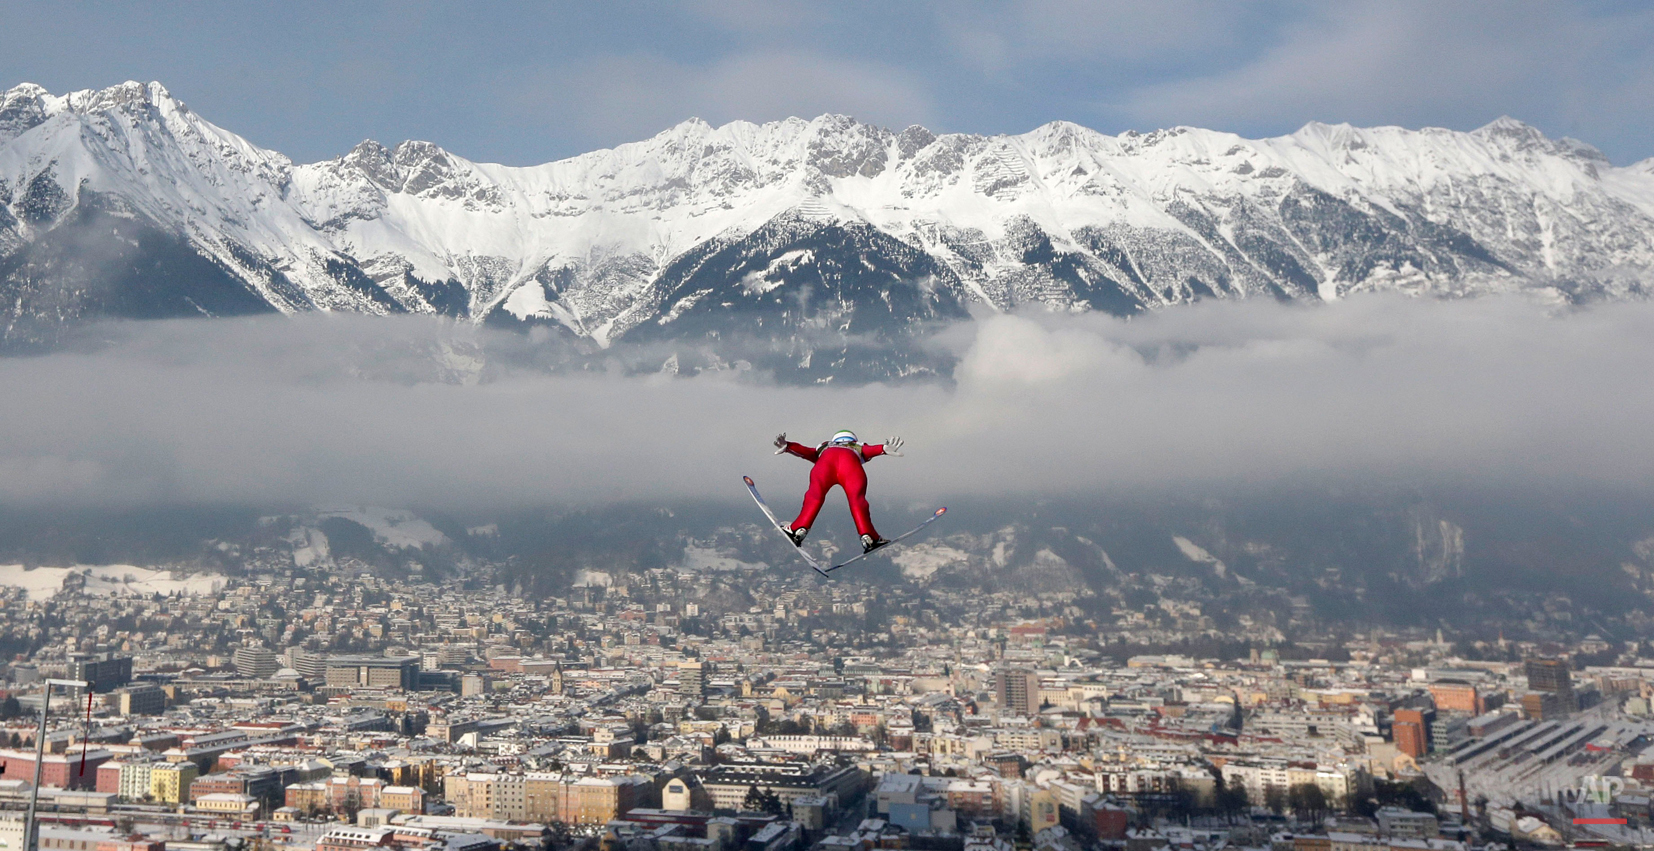 In this Jan. 3, 2015 photo, Norway's Anders Jacobsen soars during the trial jump at the third stage of the four hills ski jumping tournament in Innsbruck, Austria. (AP Photo/Matthias Schrader)